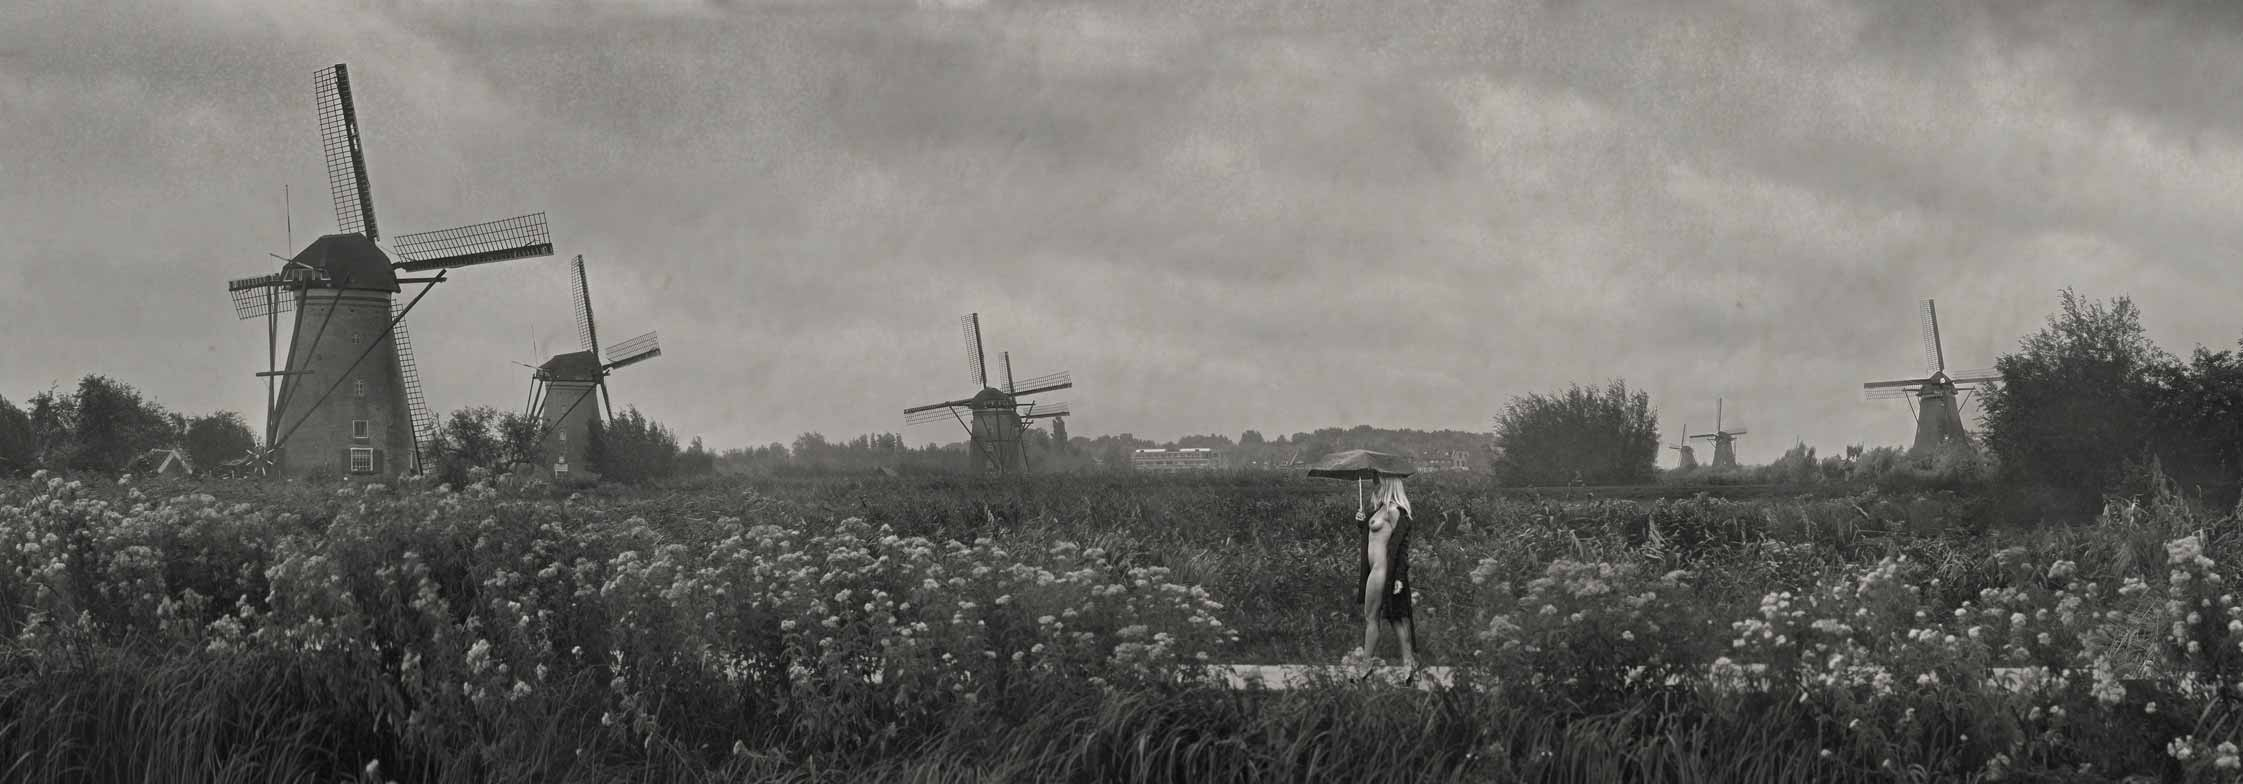 Kinderdijk-in-the-Rain_Sepia_Post